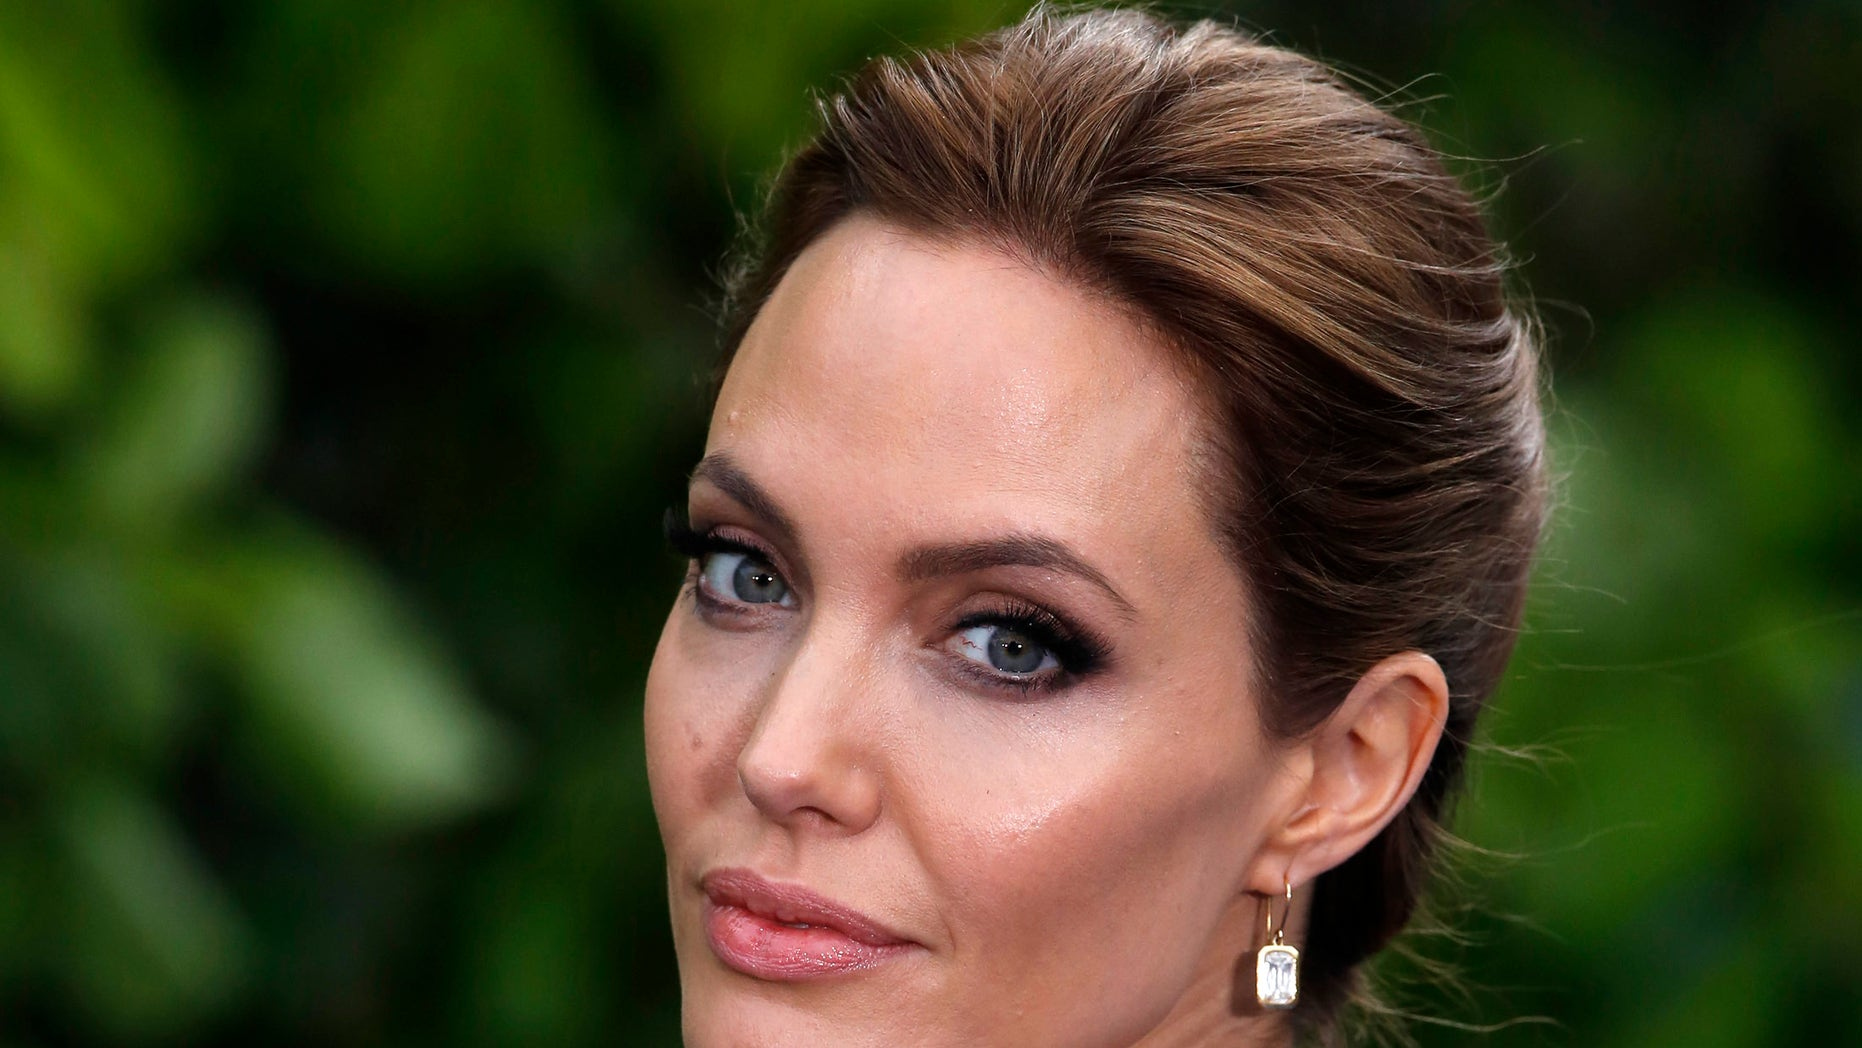 May 8, 2014. Actress Angelina Jolie arrives for a special Maleficent Costume Display at Kensington Palace in London.